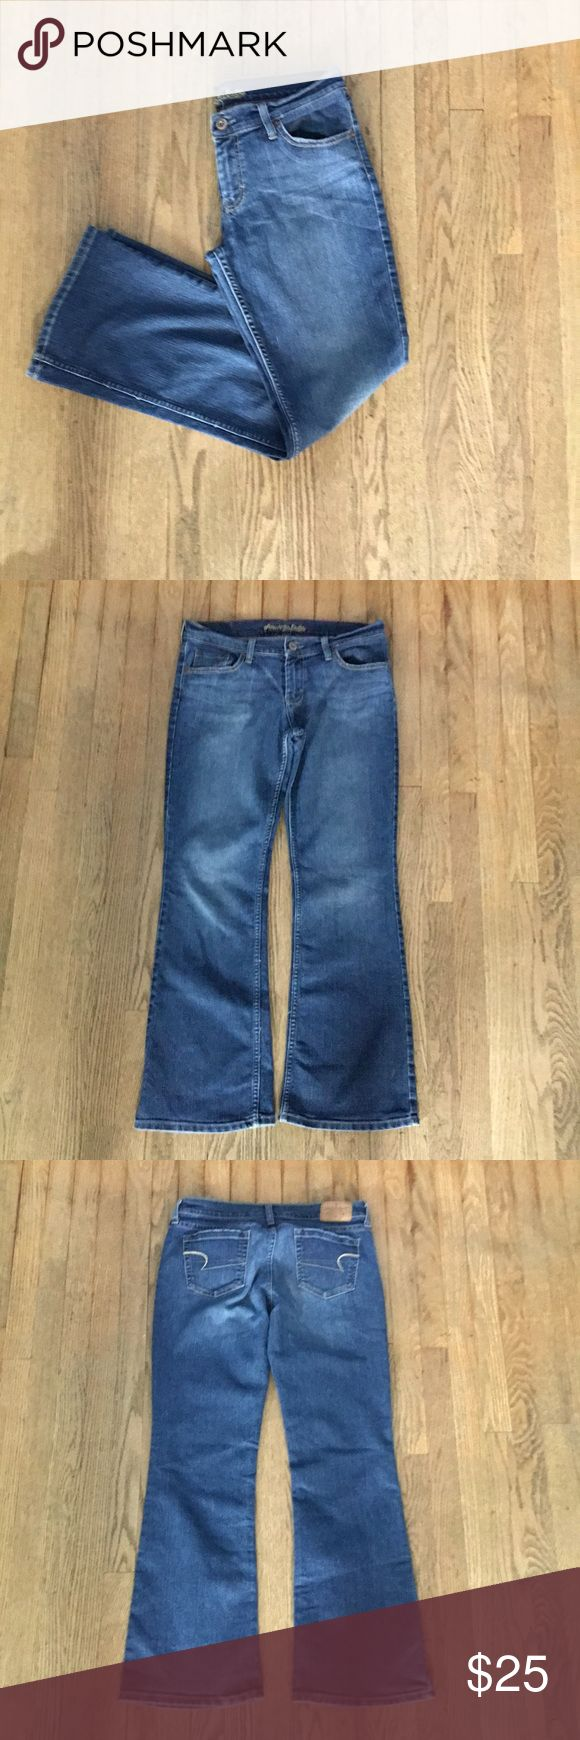 American Eagle Hipster Boot Cut Flare Jeans American Eagle Hipster jeans in fantastic condition. Boot cut/Flare leg with stretch to give that perfect fit. Very little sign of wear. No rips, stains, or tears! American Eagle Outfitters Jeans